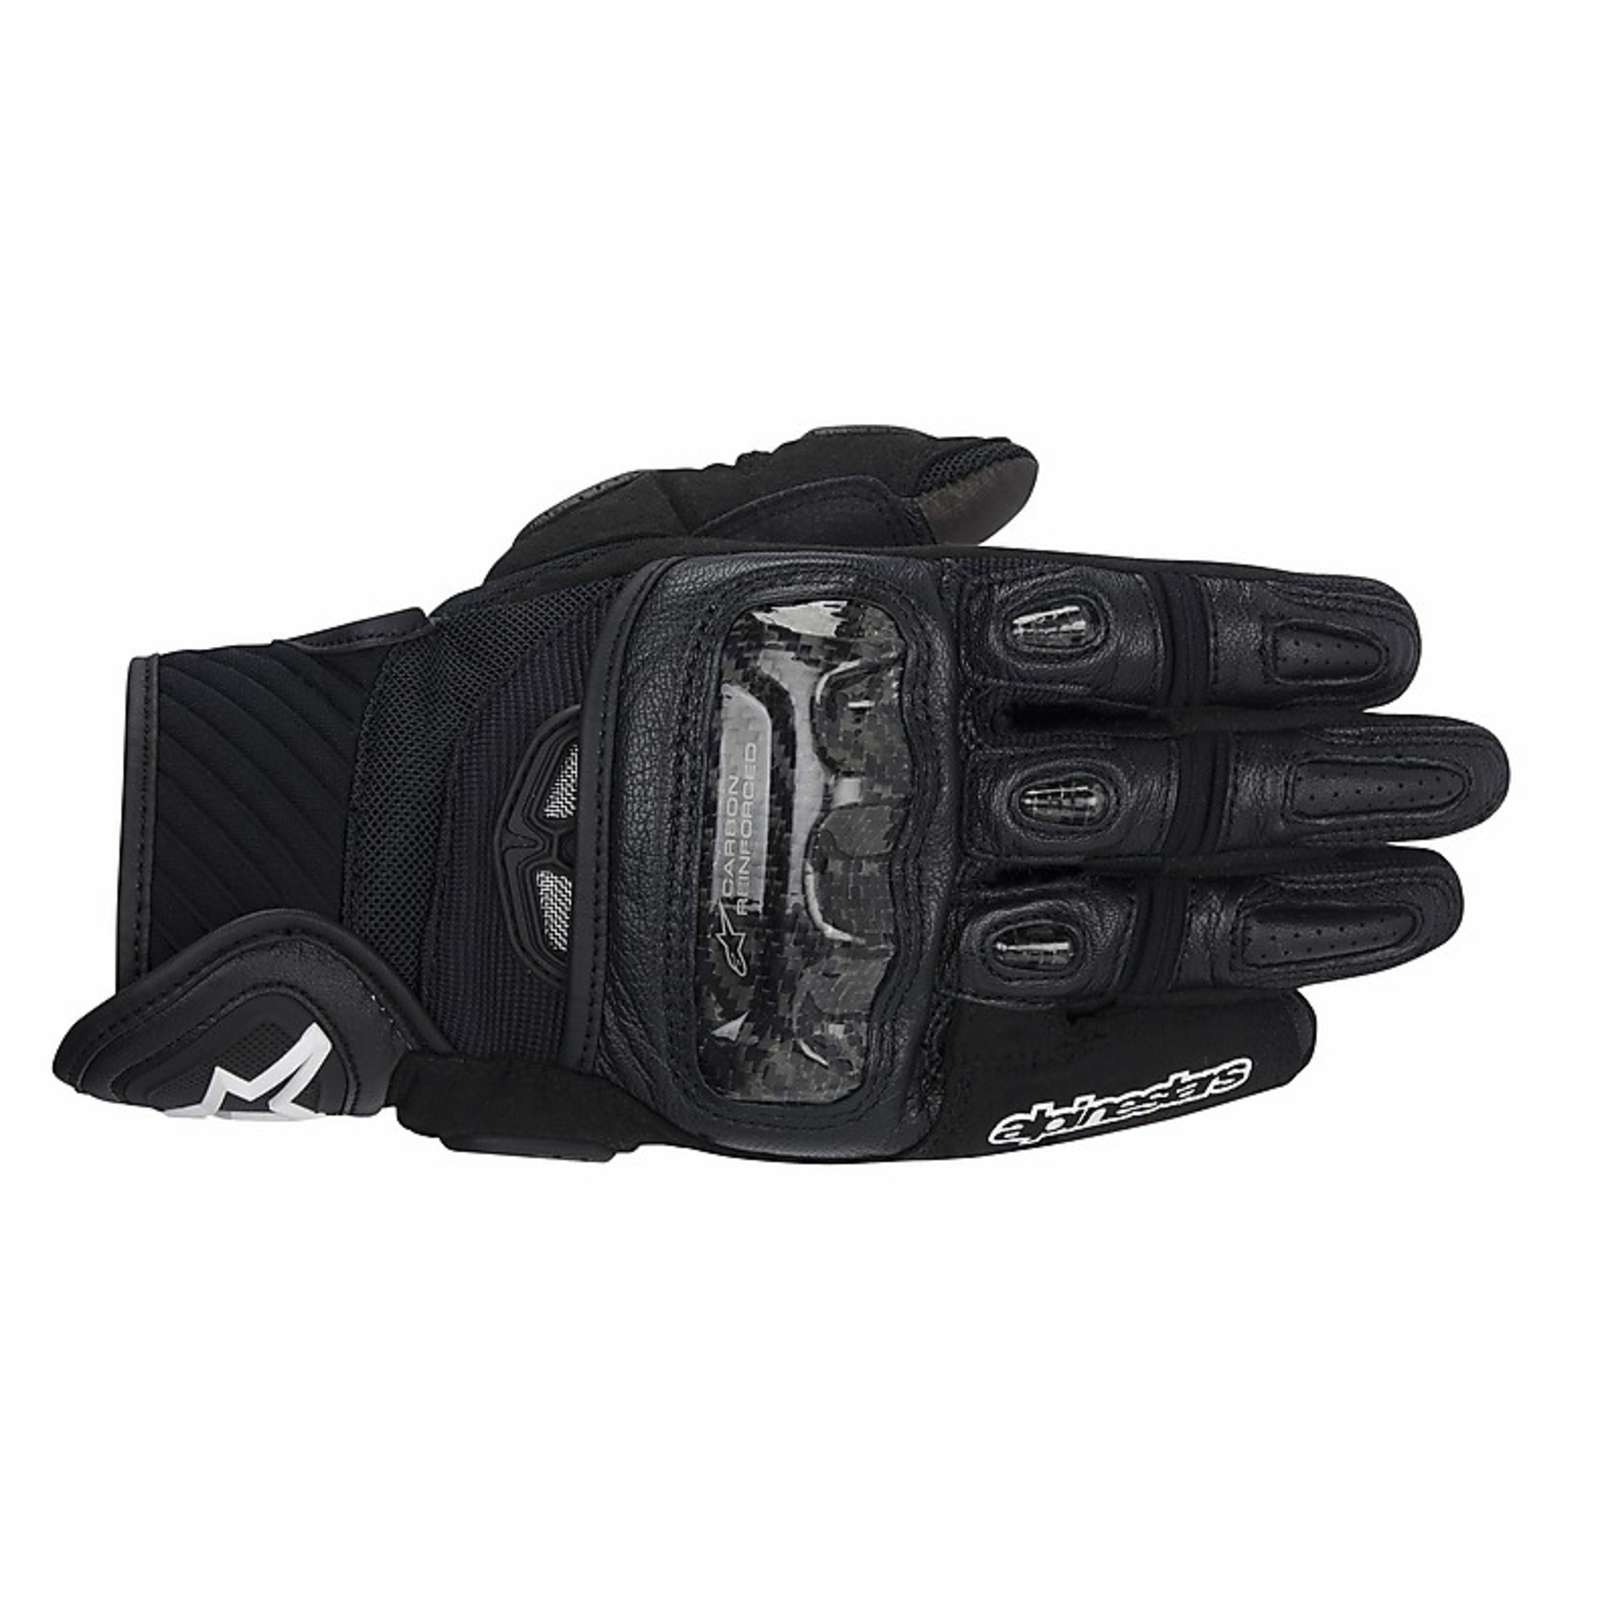 GUANTI MOTO ALPINESTARS GP AIR BLACK COD. 3567914